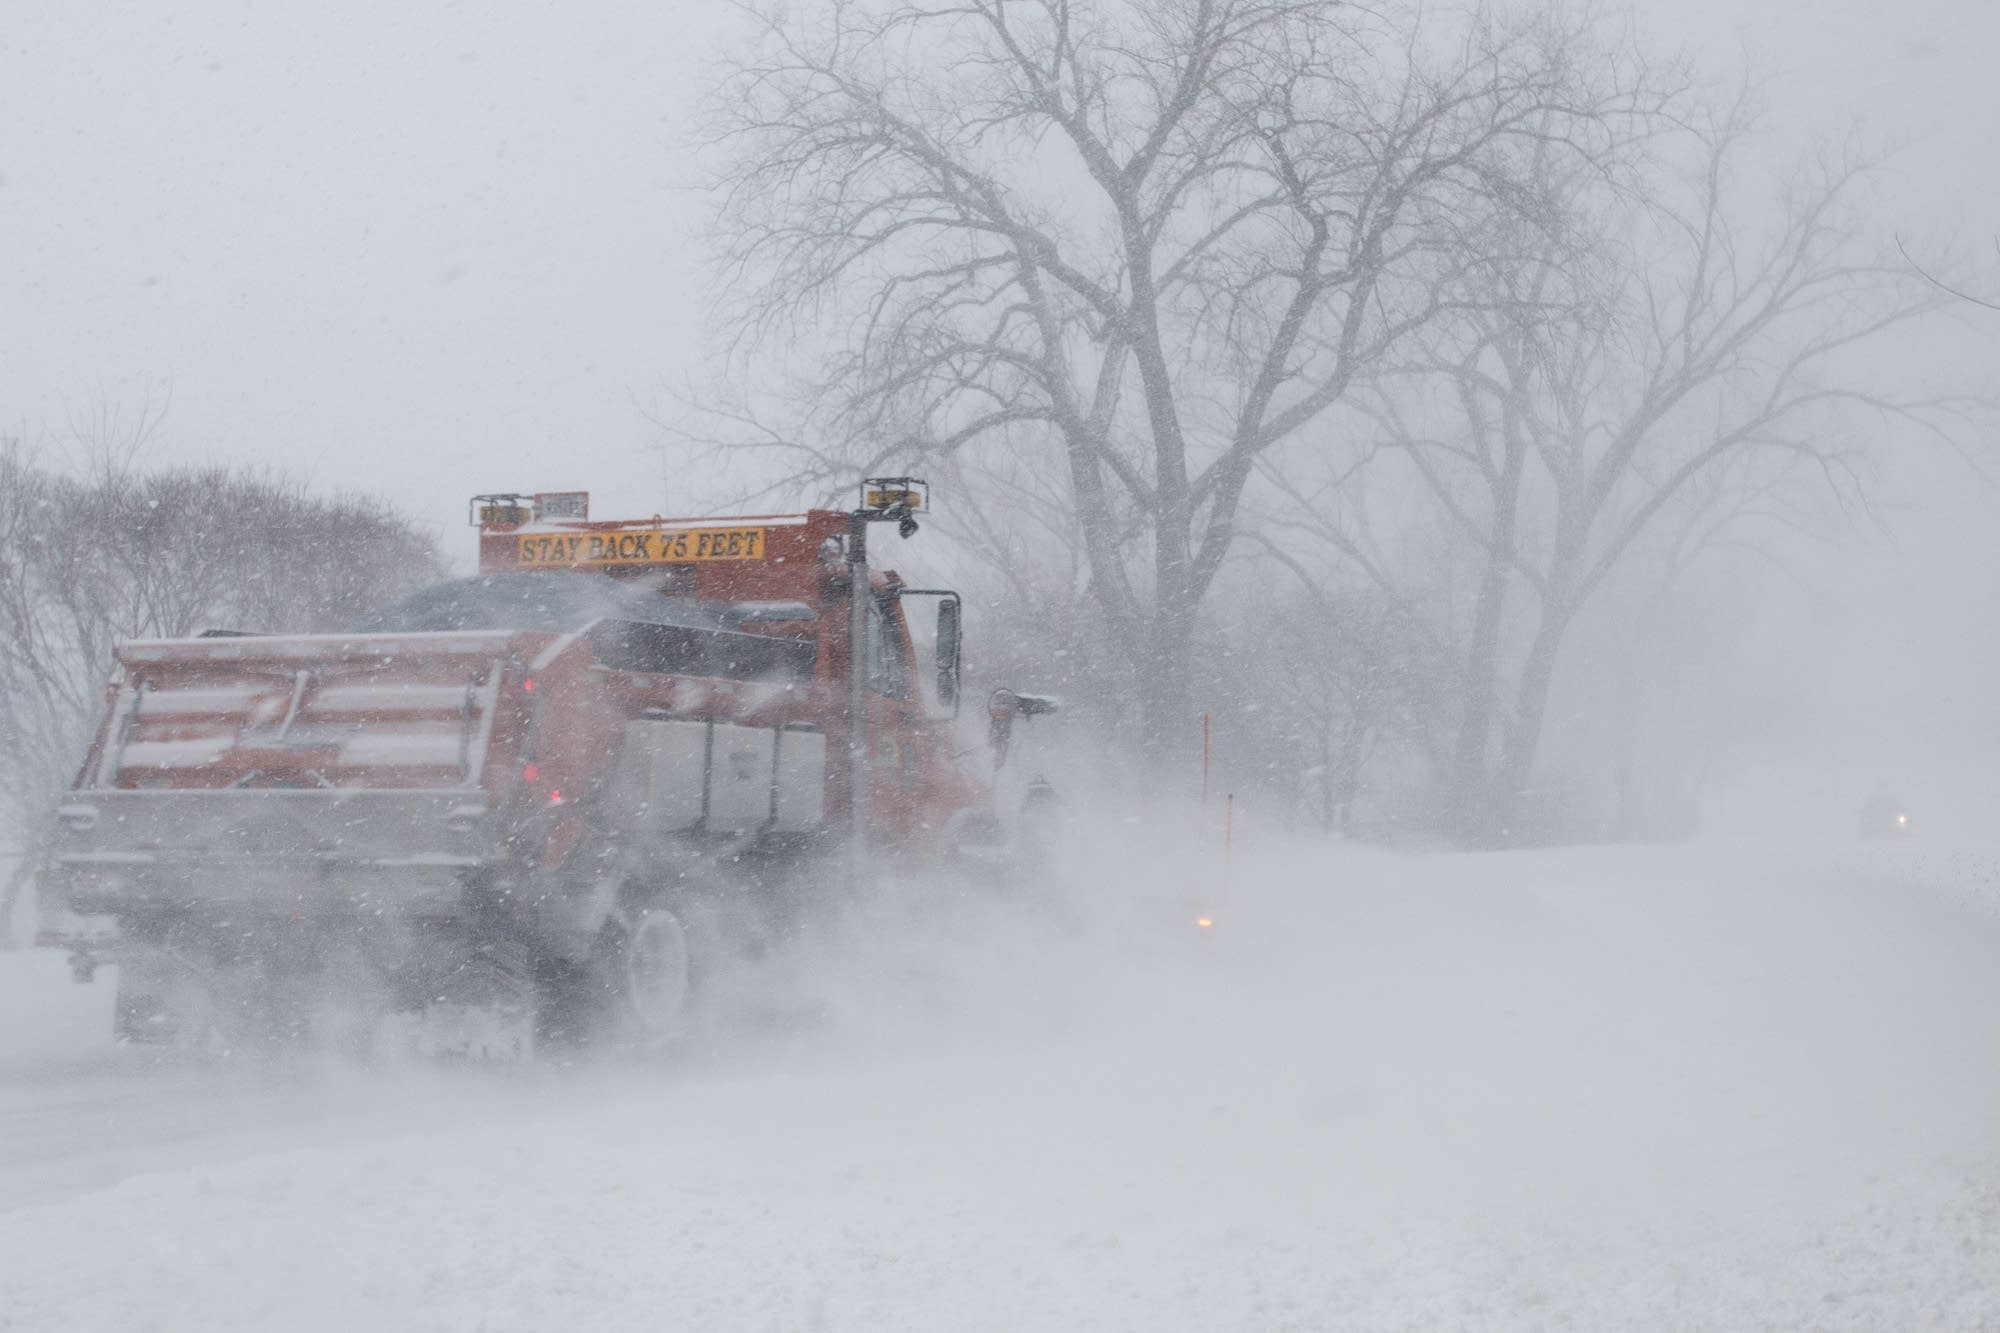 Plows were out trying to keep the main roads in Shoreview clear.